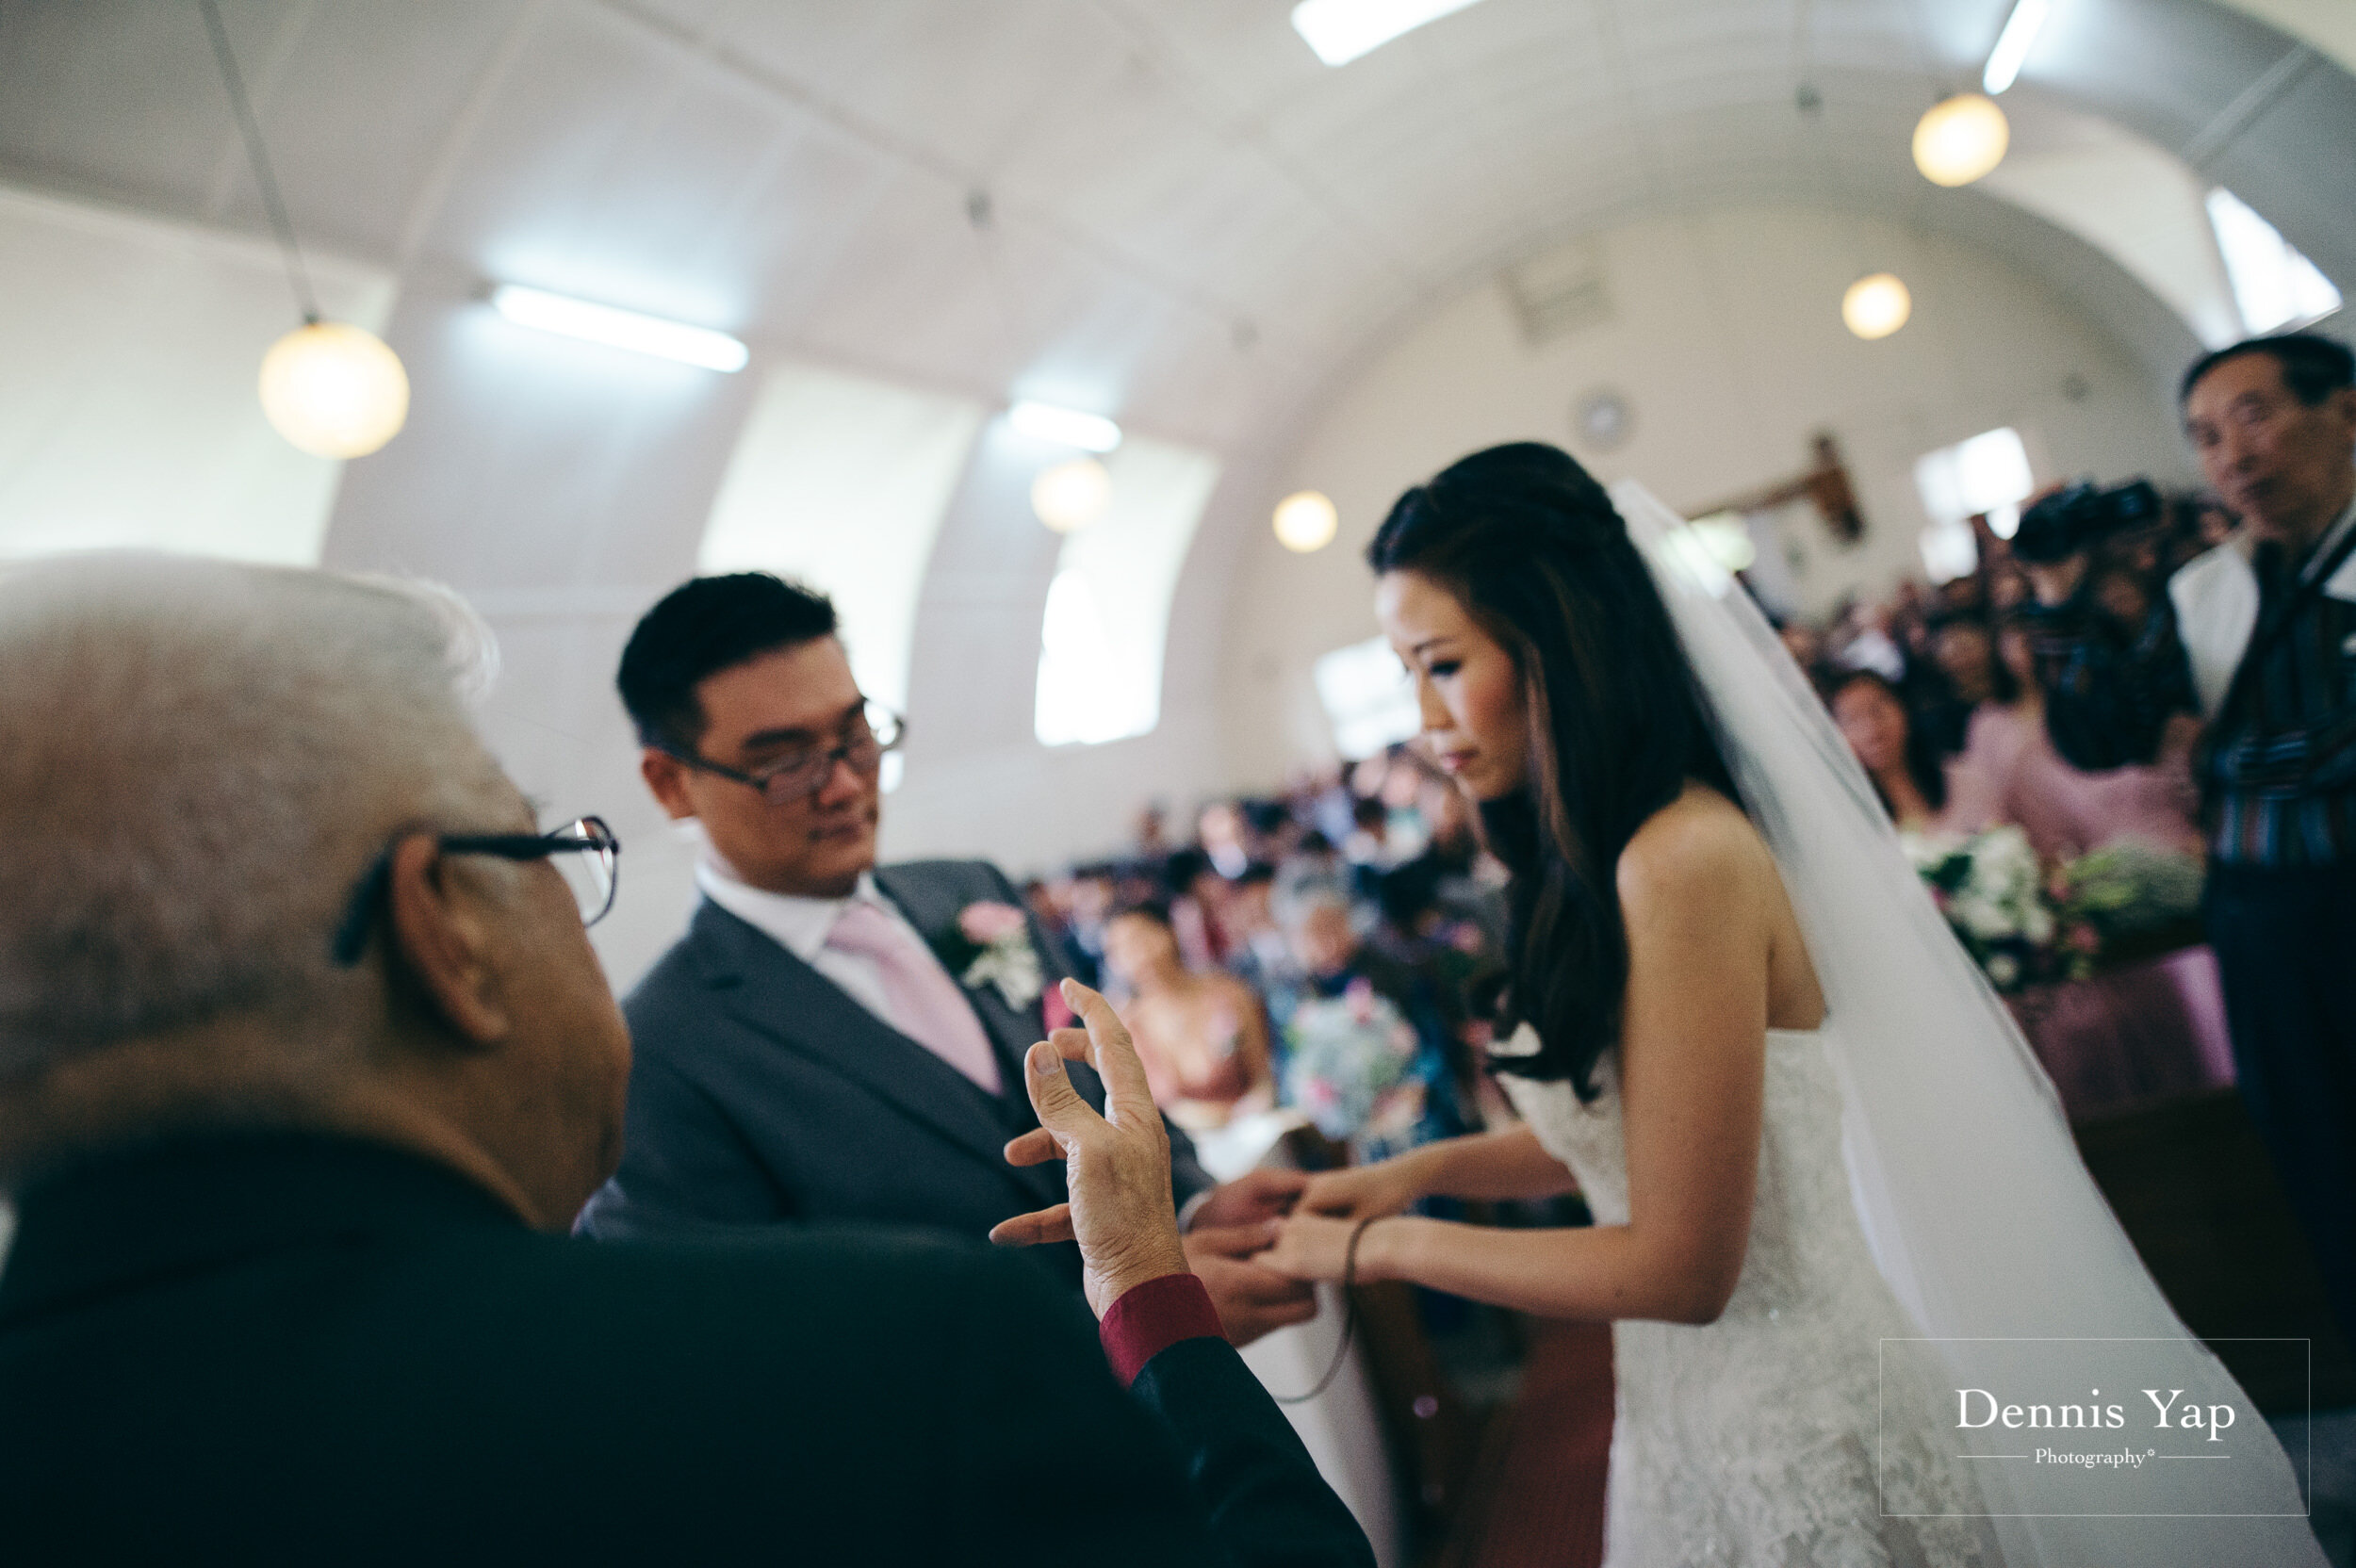 alex siowli wedding reception cameron highlands smoke house dennis yap photography malaysia traditional church wedding-123.jpg